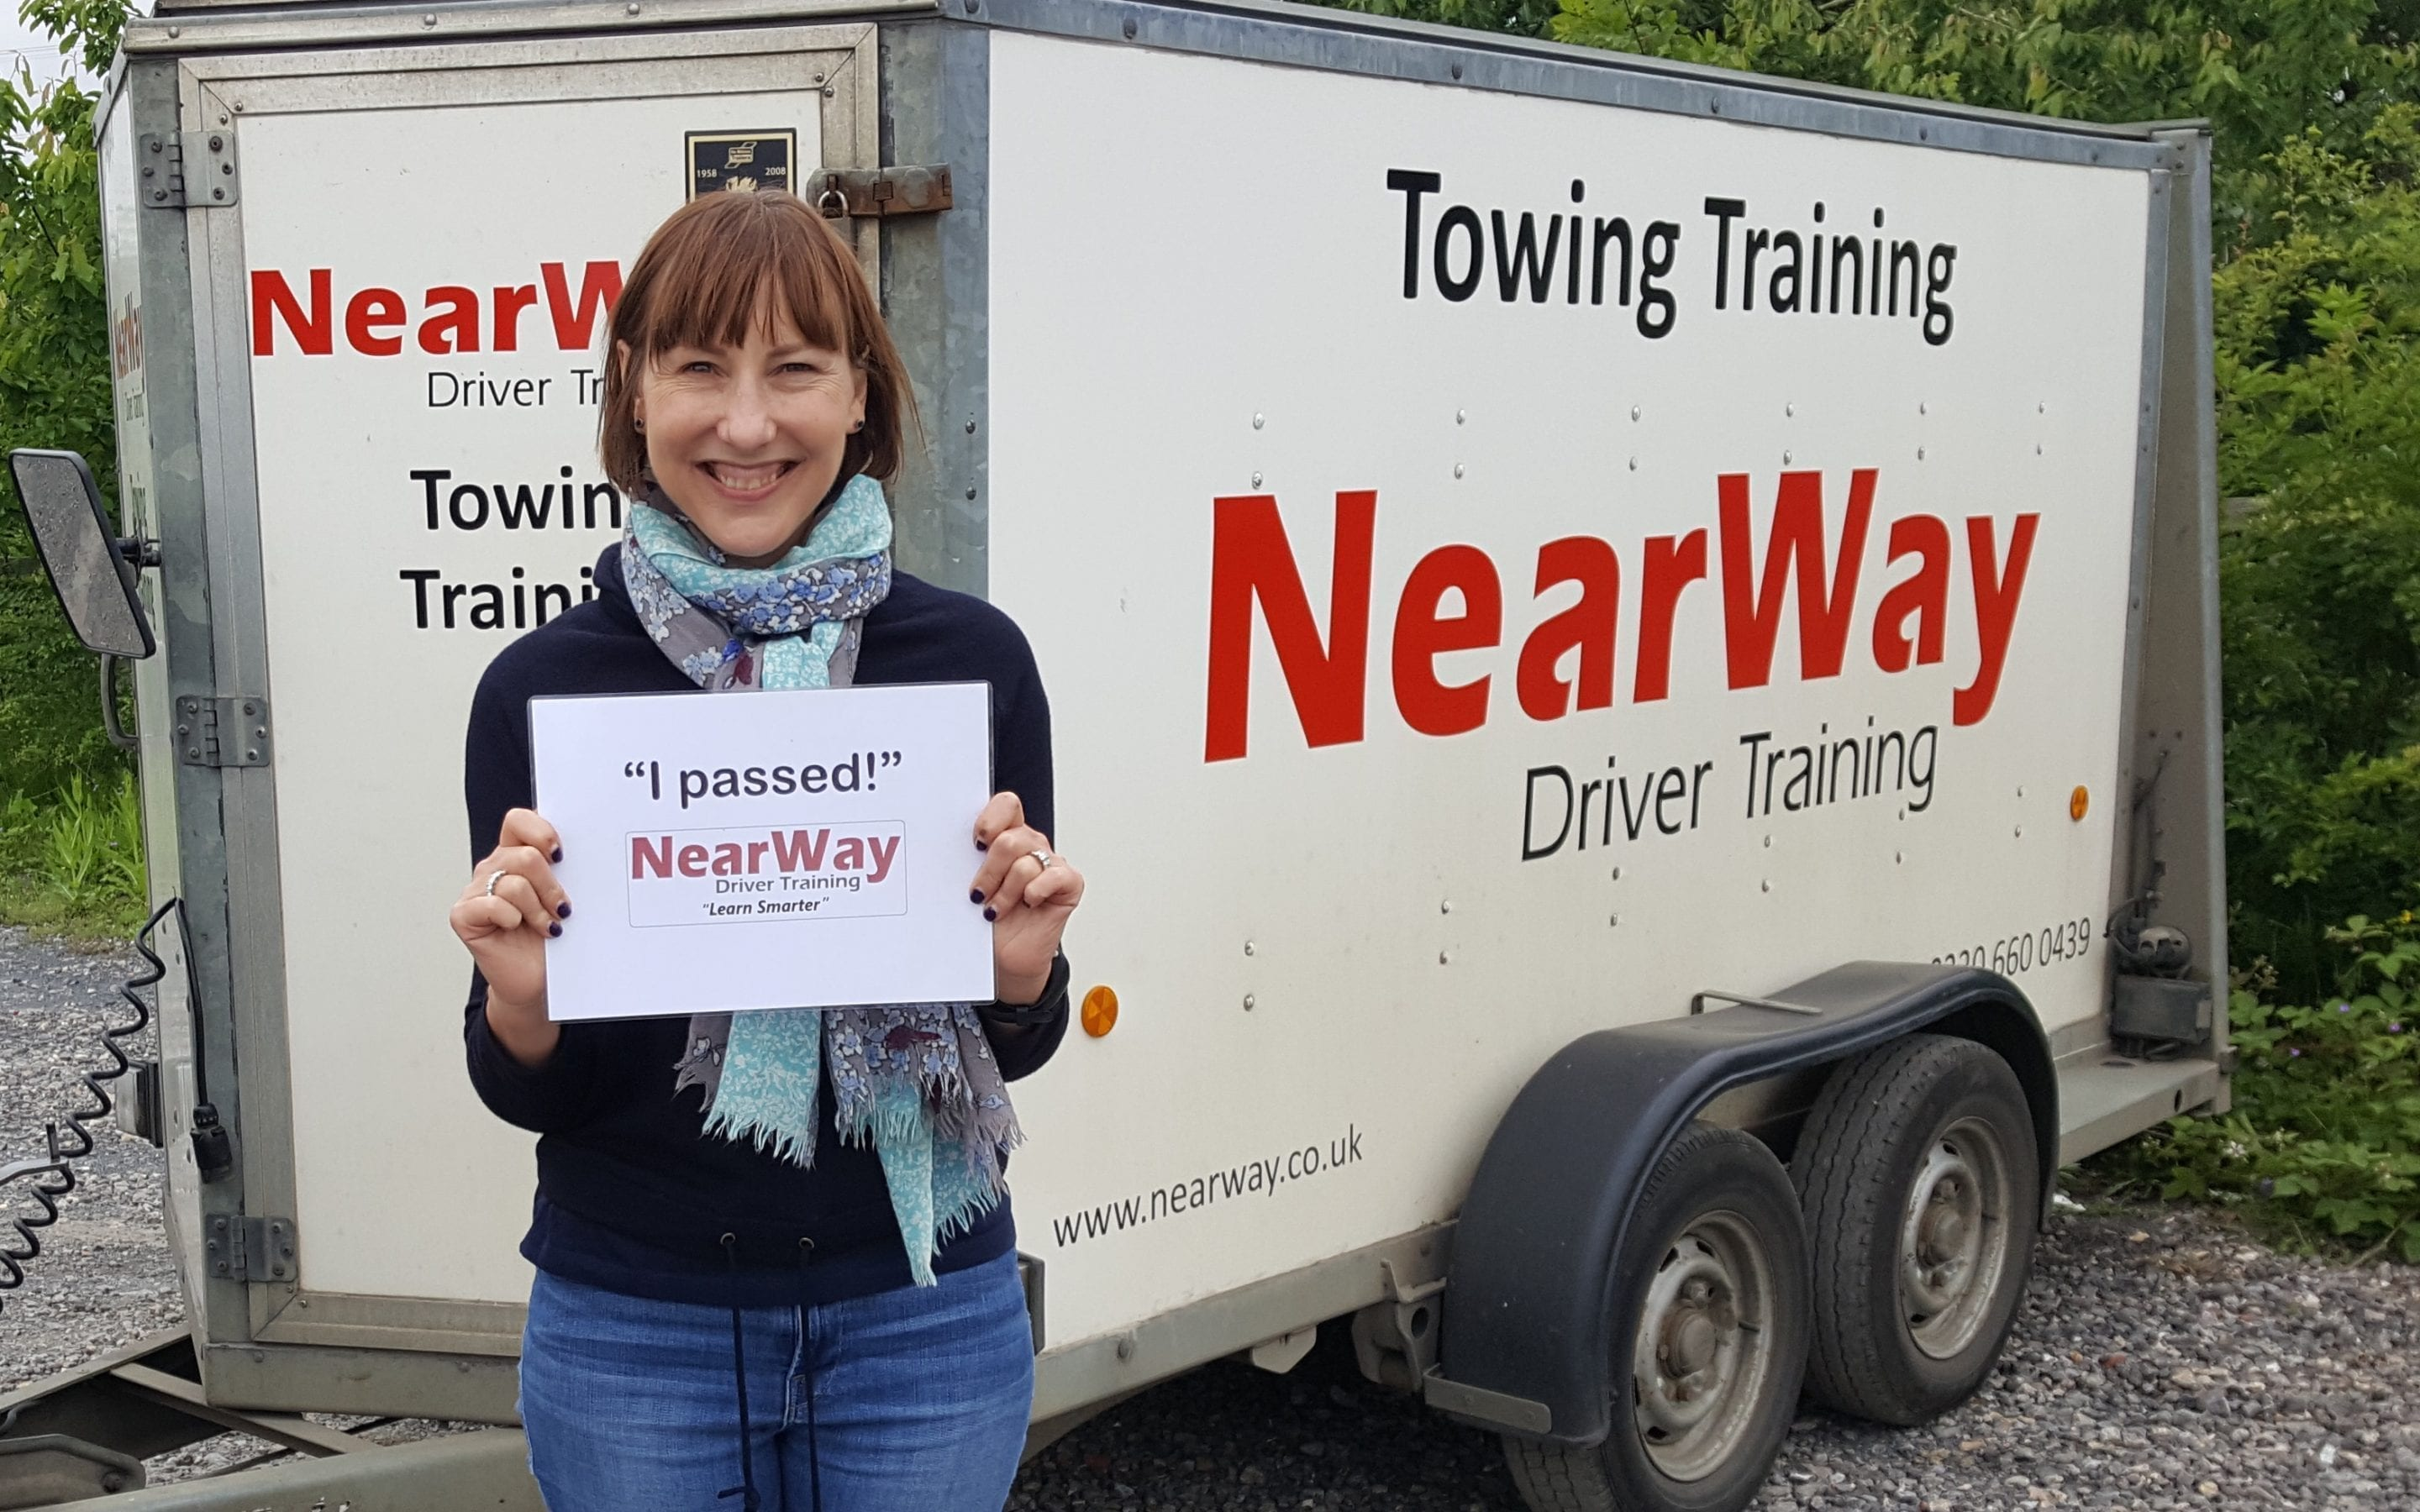 Catrina Holme Towing Training